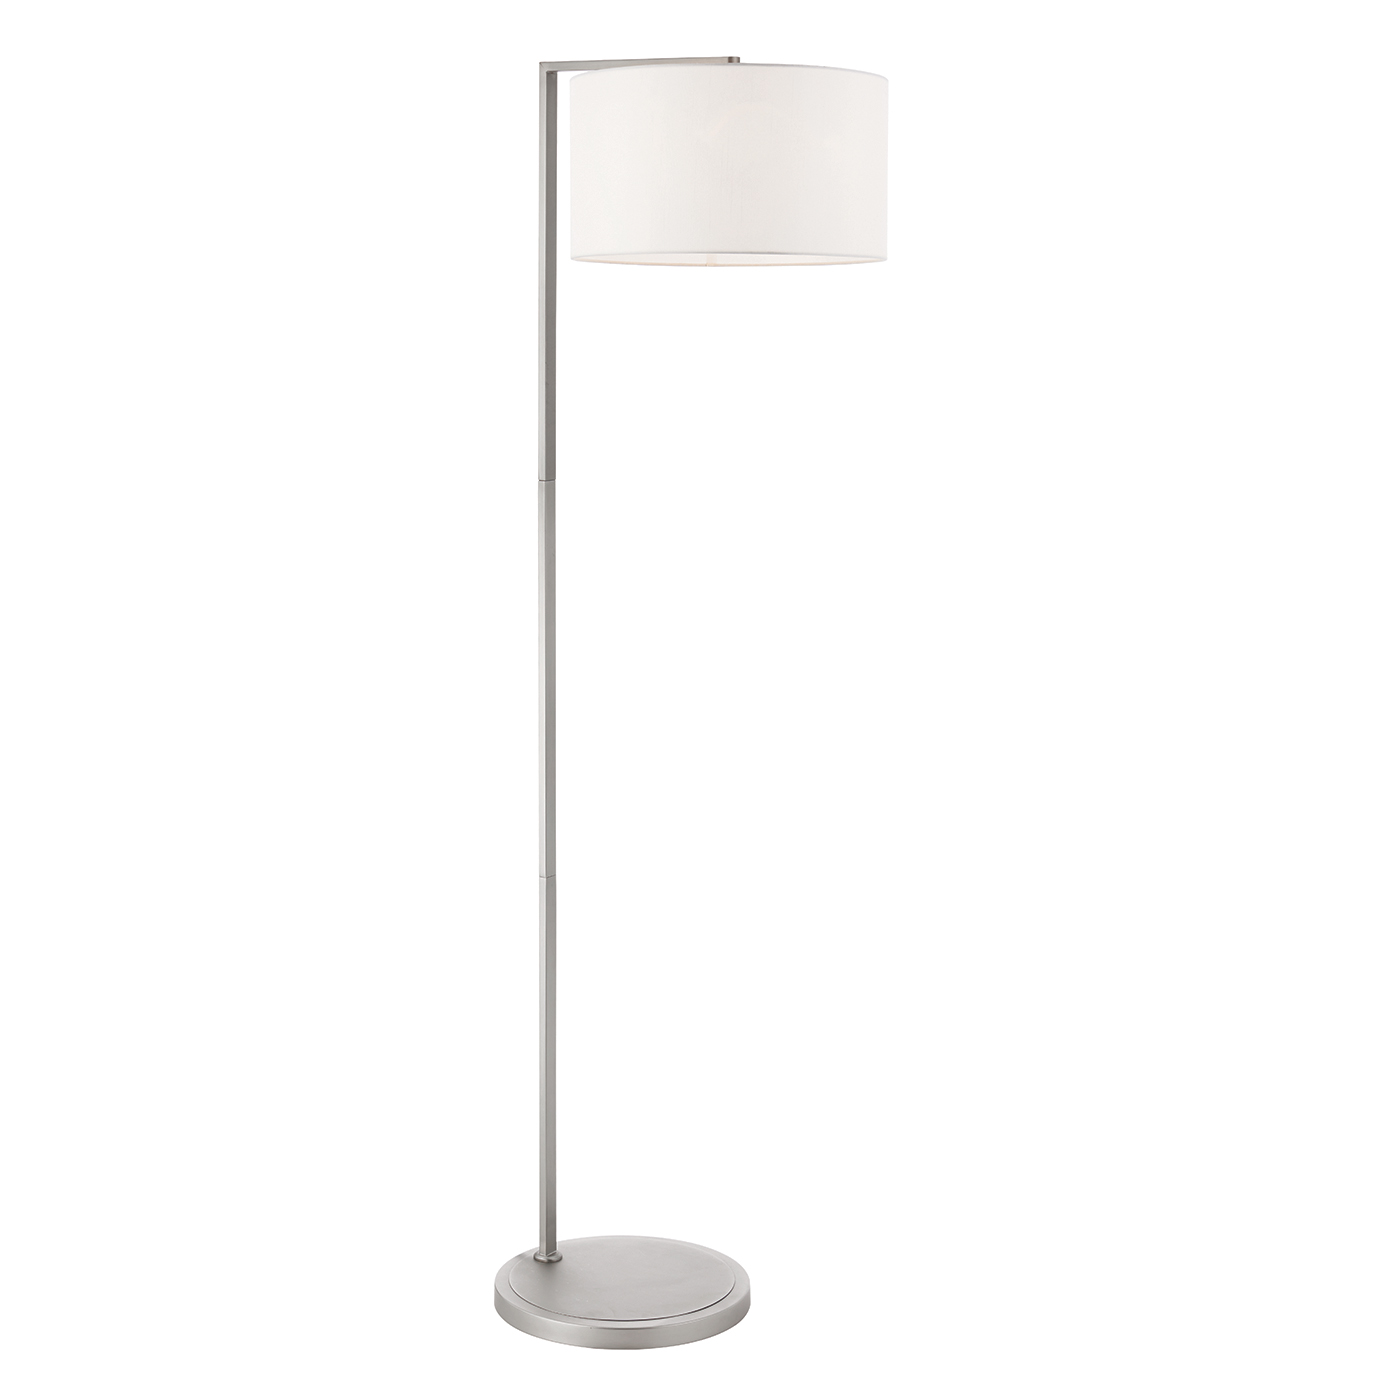 Endon Daley floor lamp 40W Matt nickel plate & vintage white faux silk Thumbnail 1